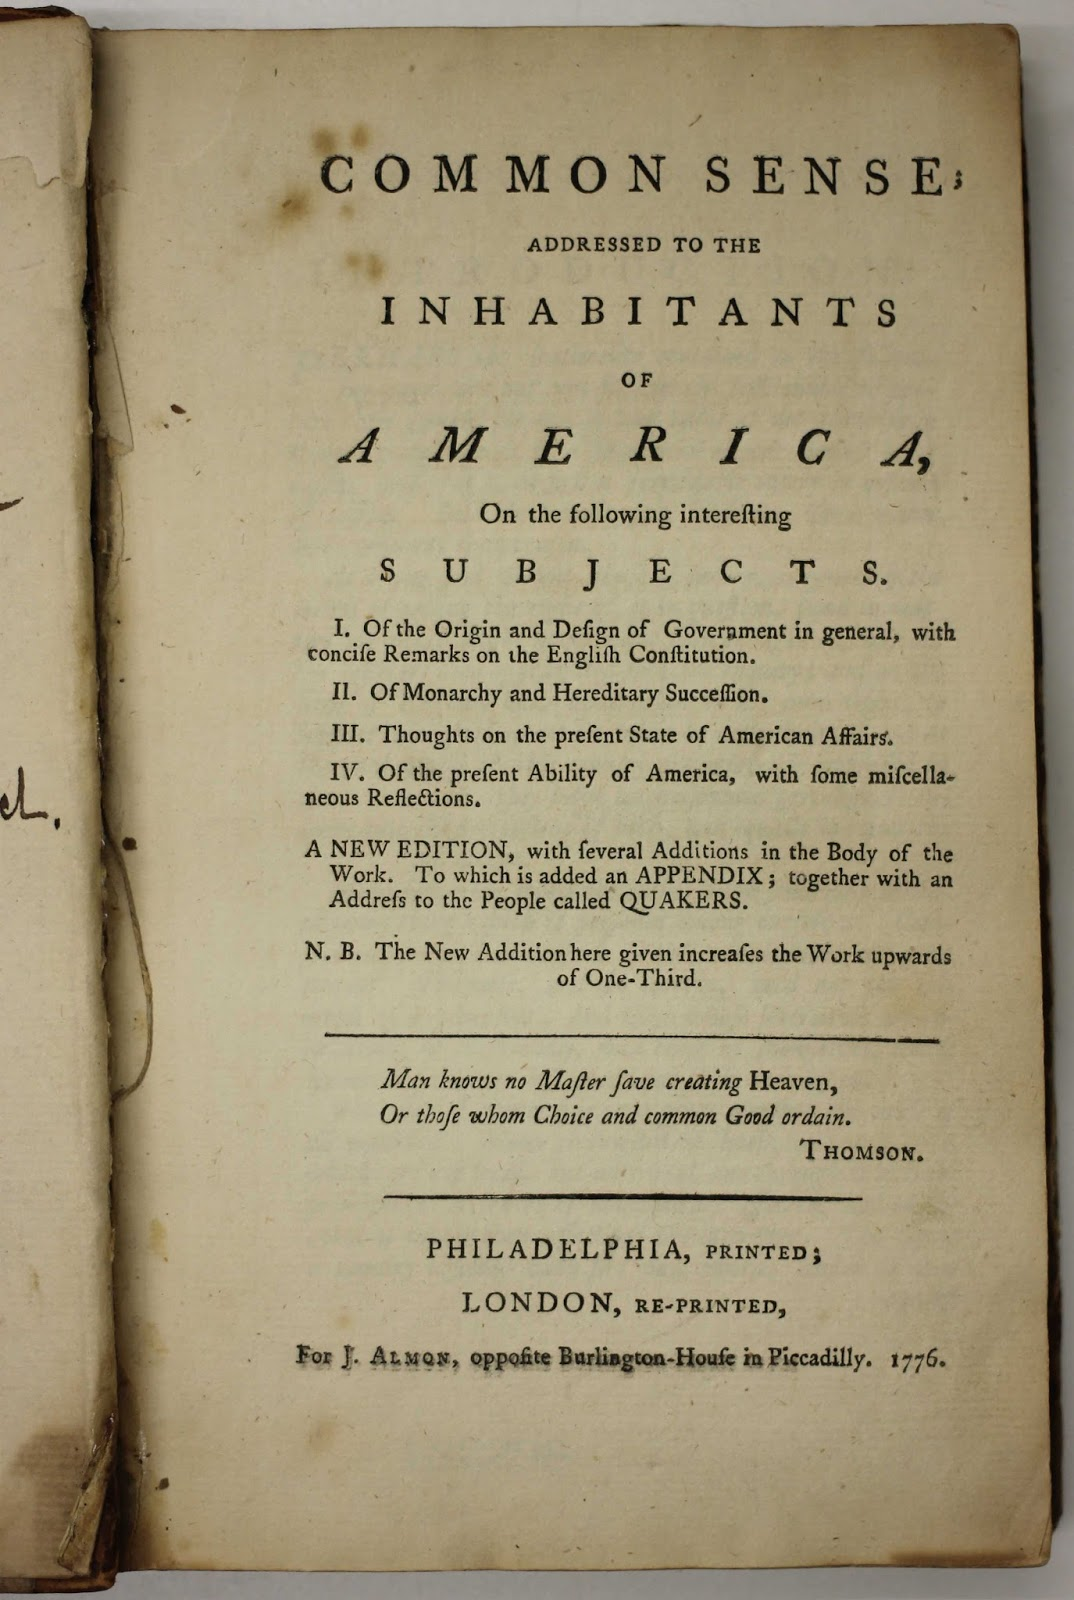 Brandeis Special Collections Spotlight Thomas Paine's